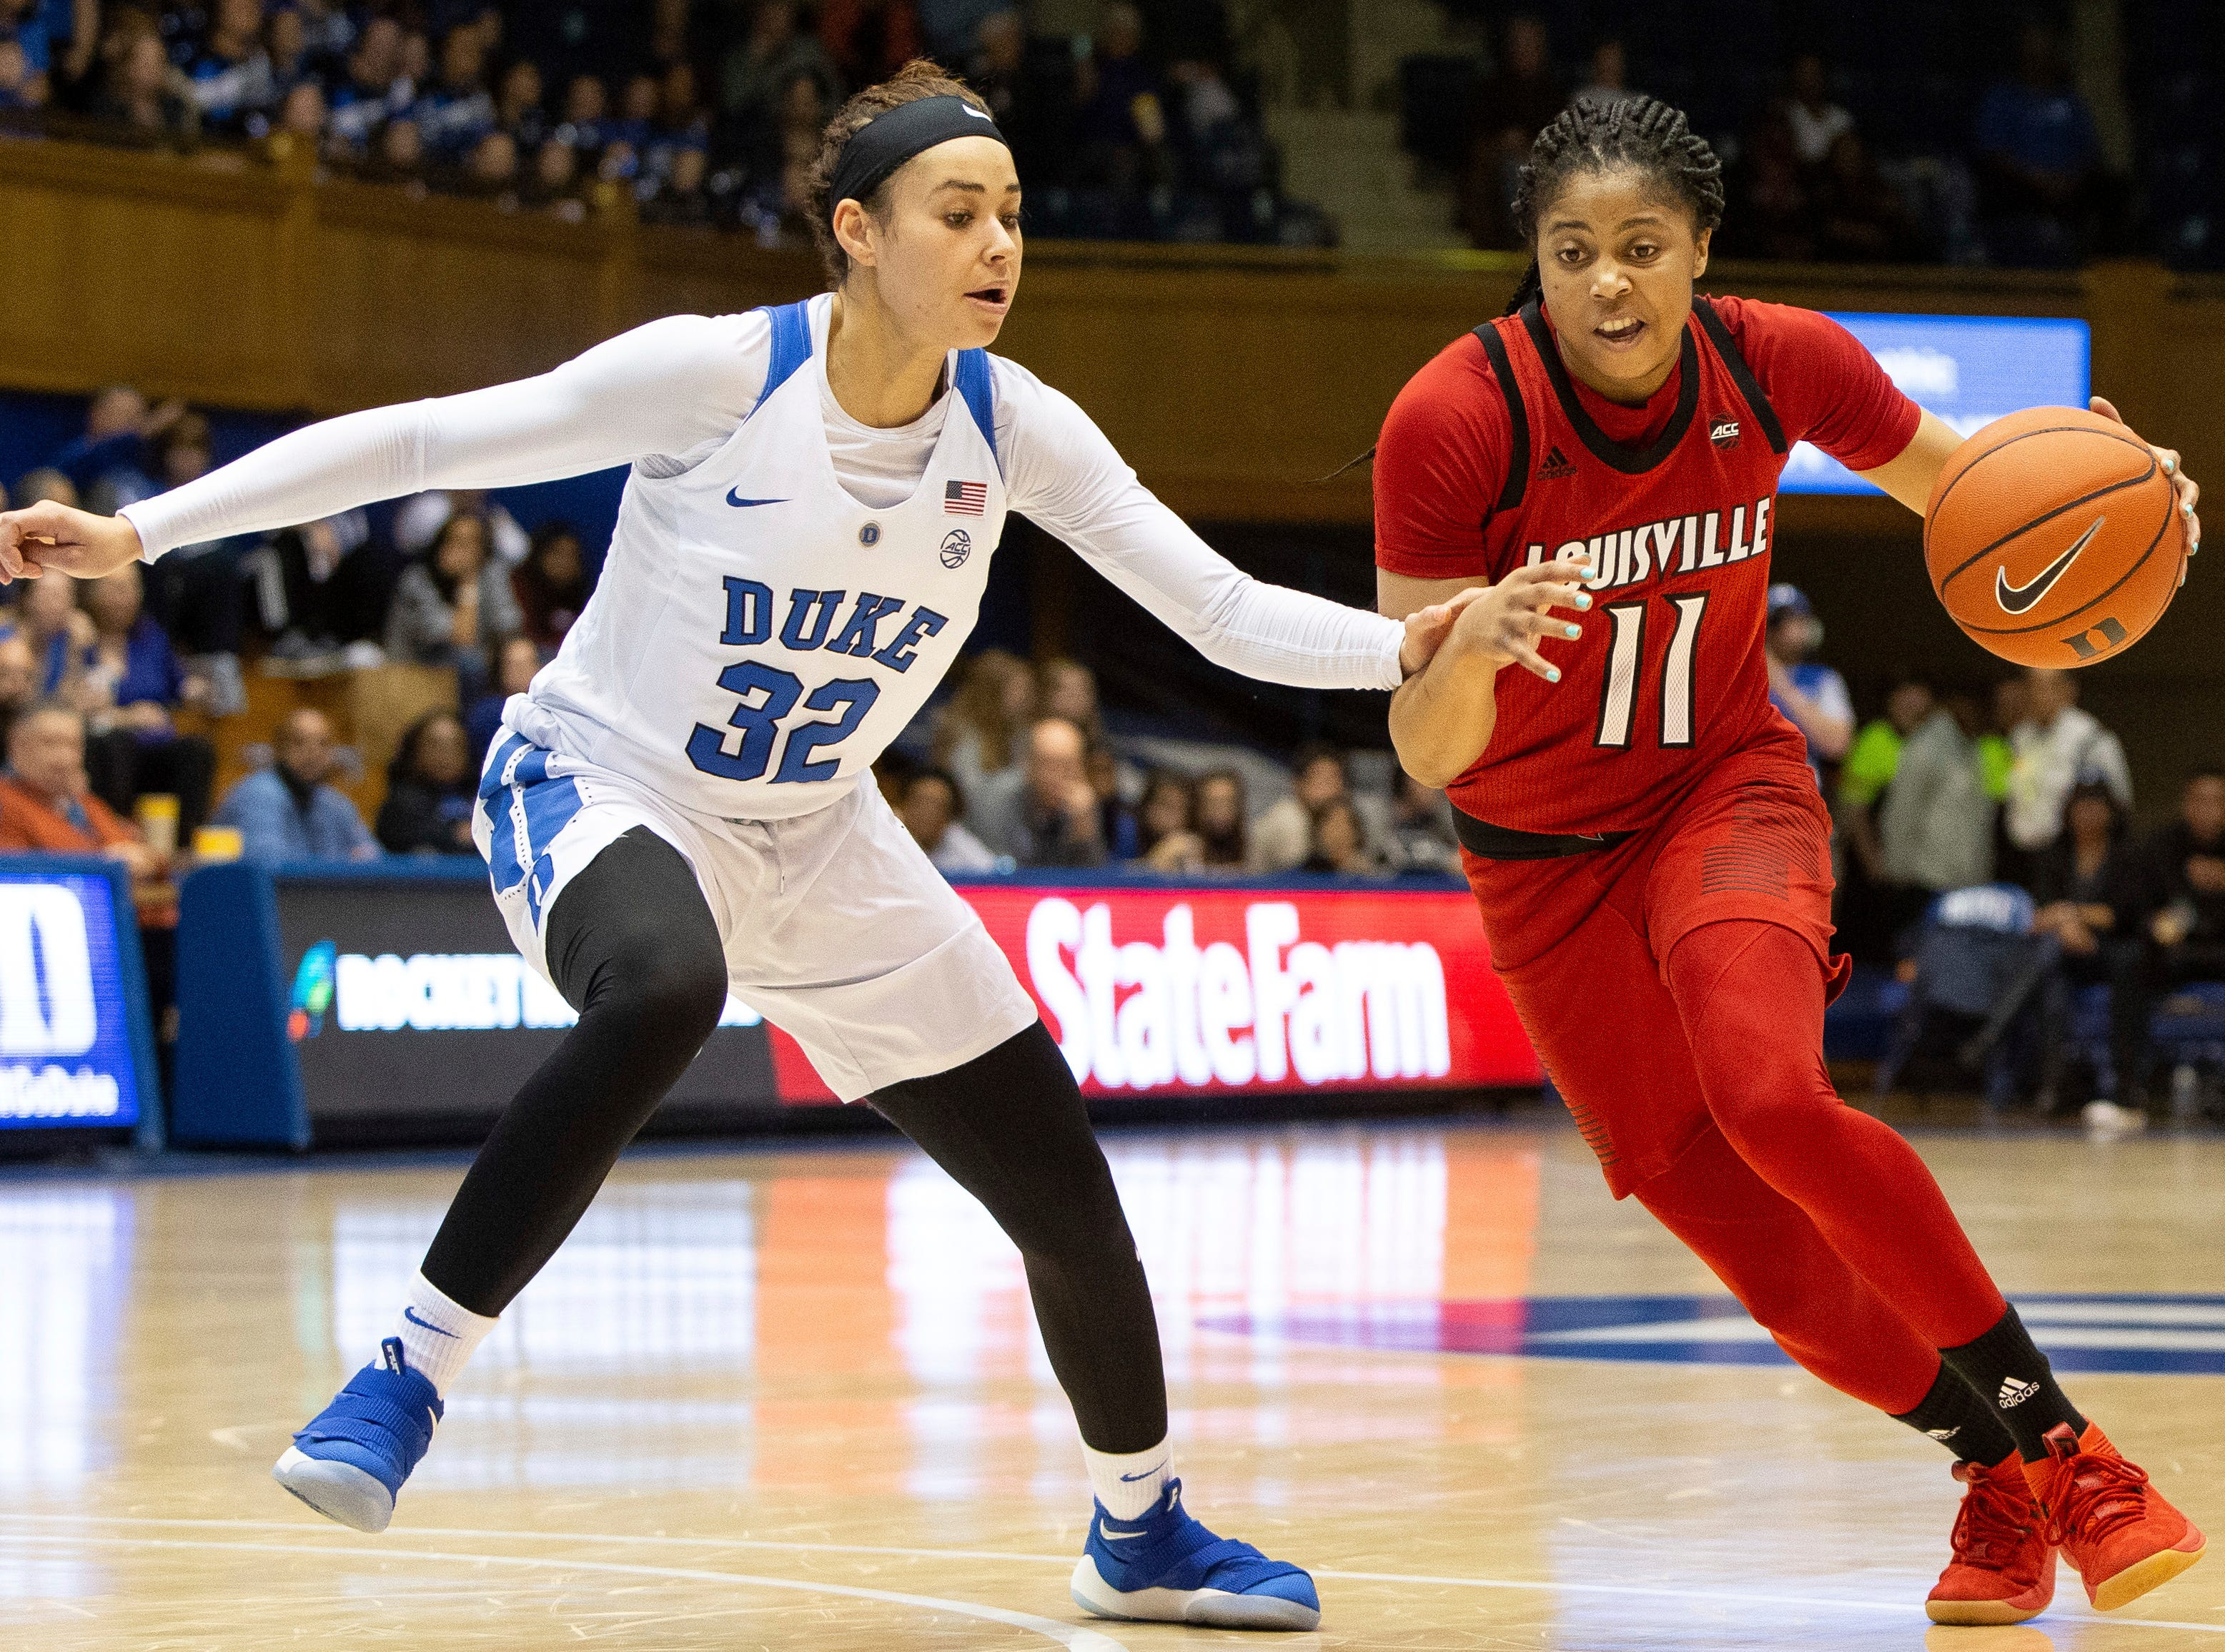 Louisville's Arica Carter (11) drives against Duke's Jayda Adams (32) during the first half of an NCAA college basketball game in Durham, N.C., Sunday, Jan. 6, 2019.